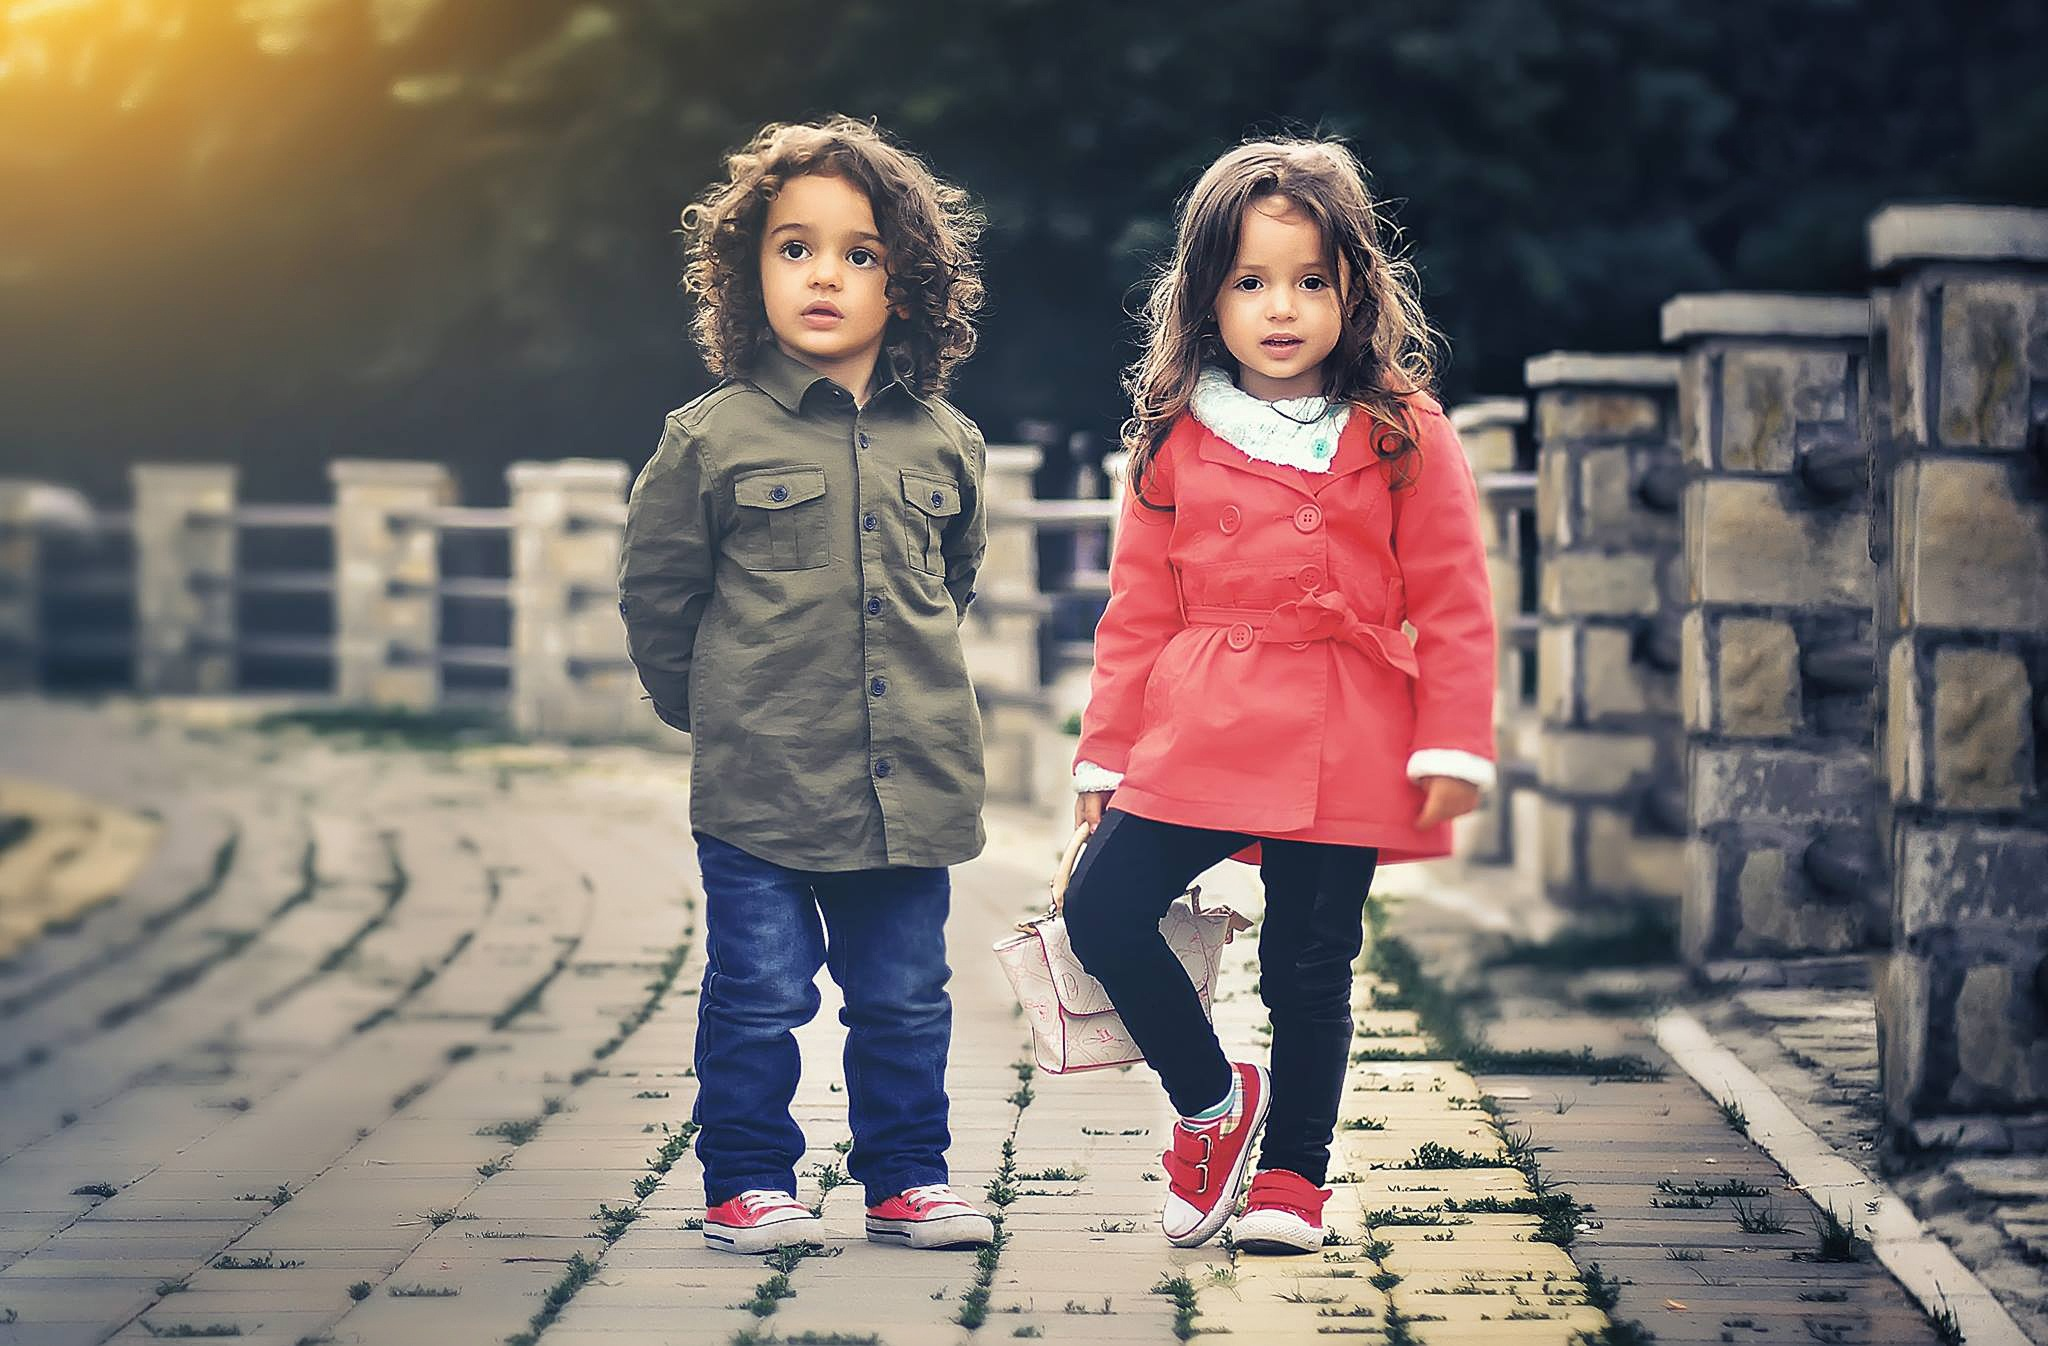 Two Children Standing Near Concrete Fence